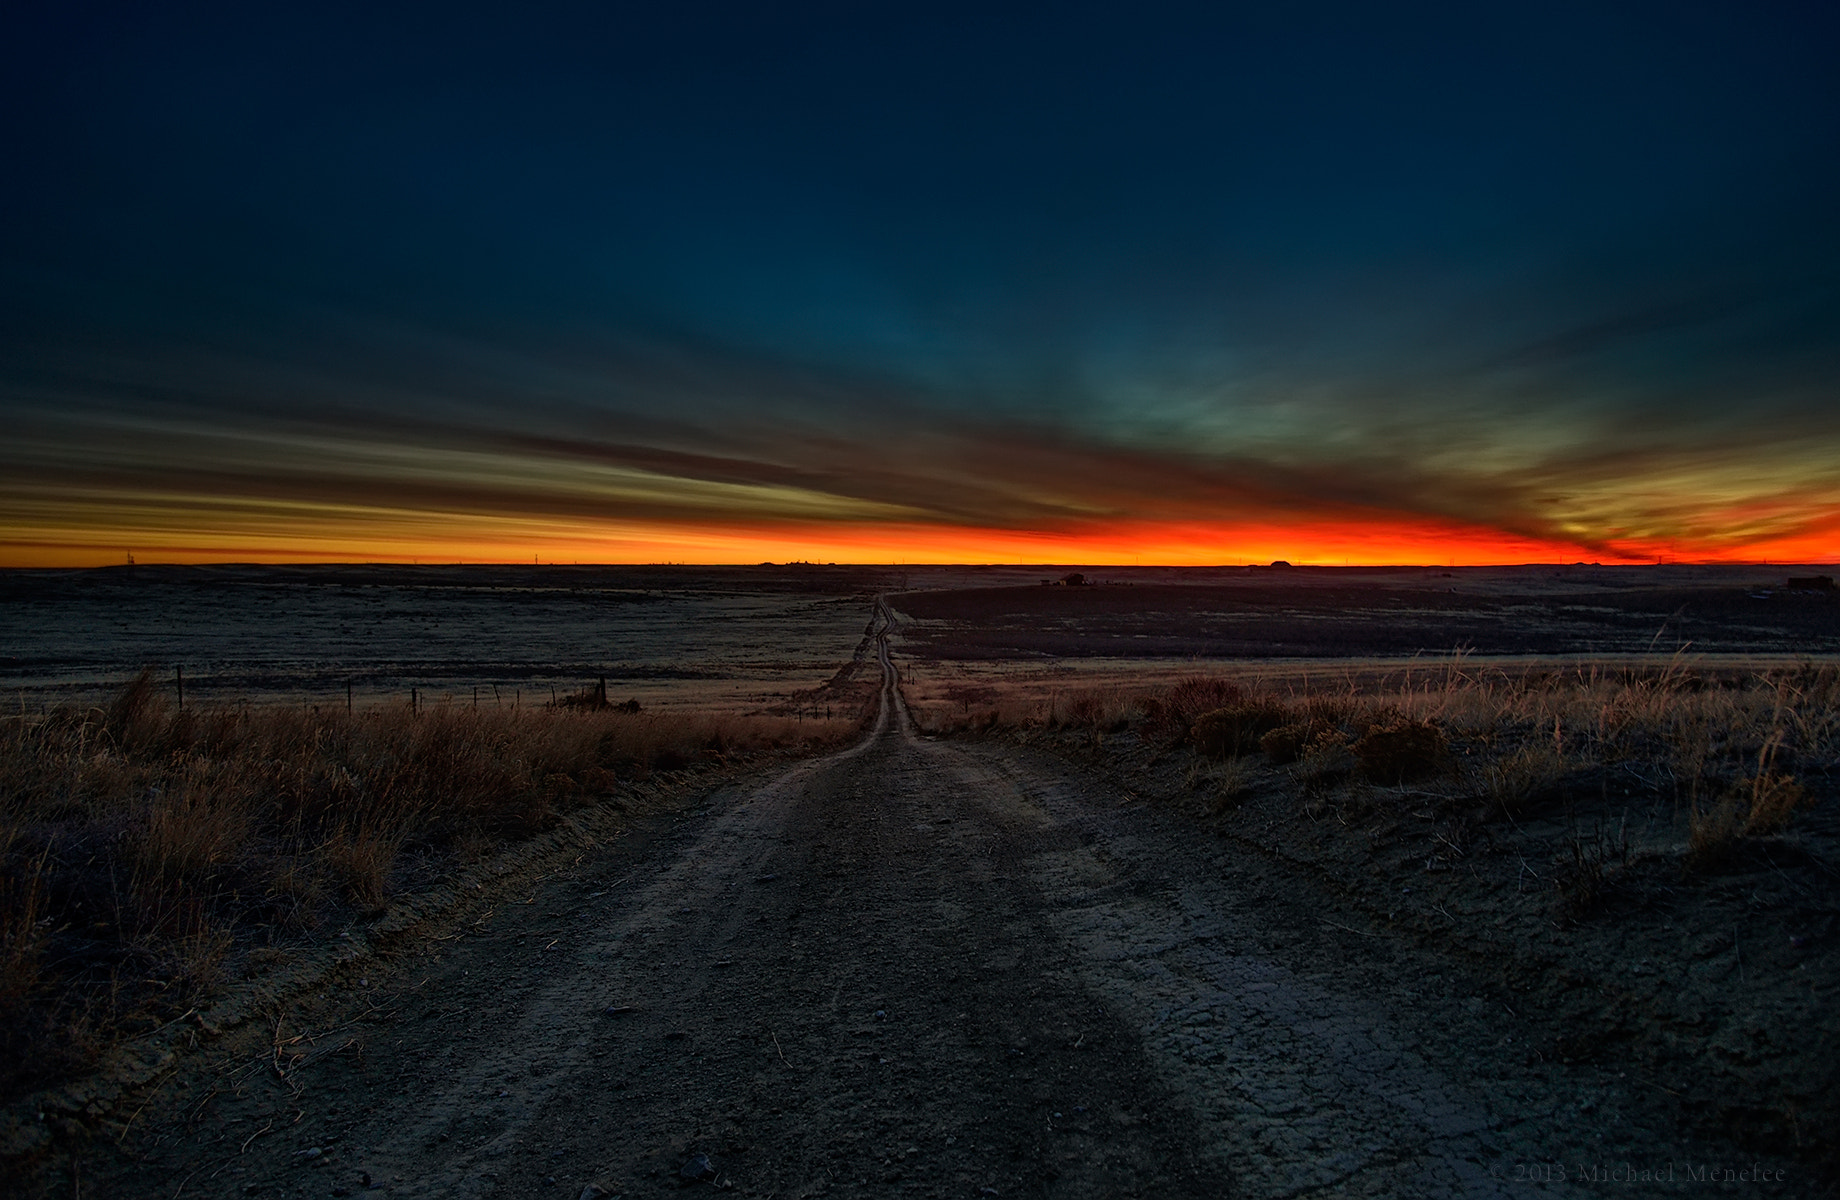 Photograph Starting a New Day by Michael Menefee on 500px